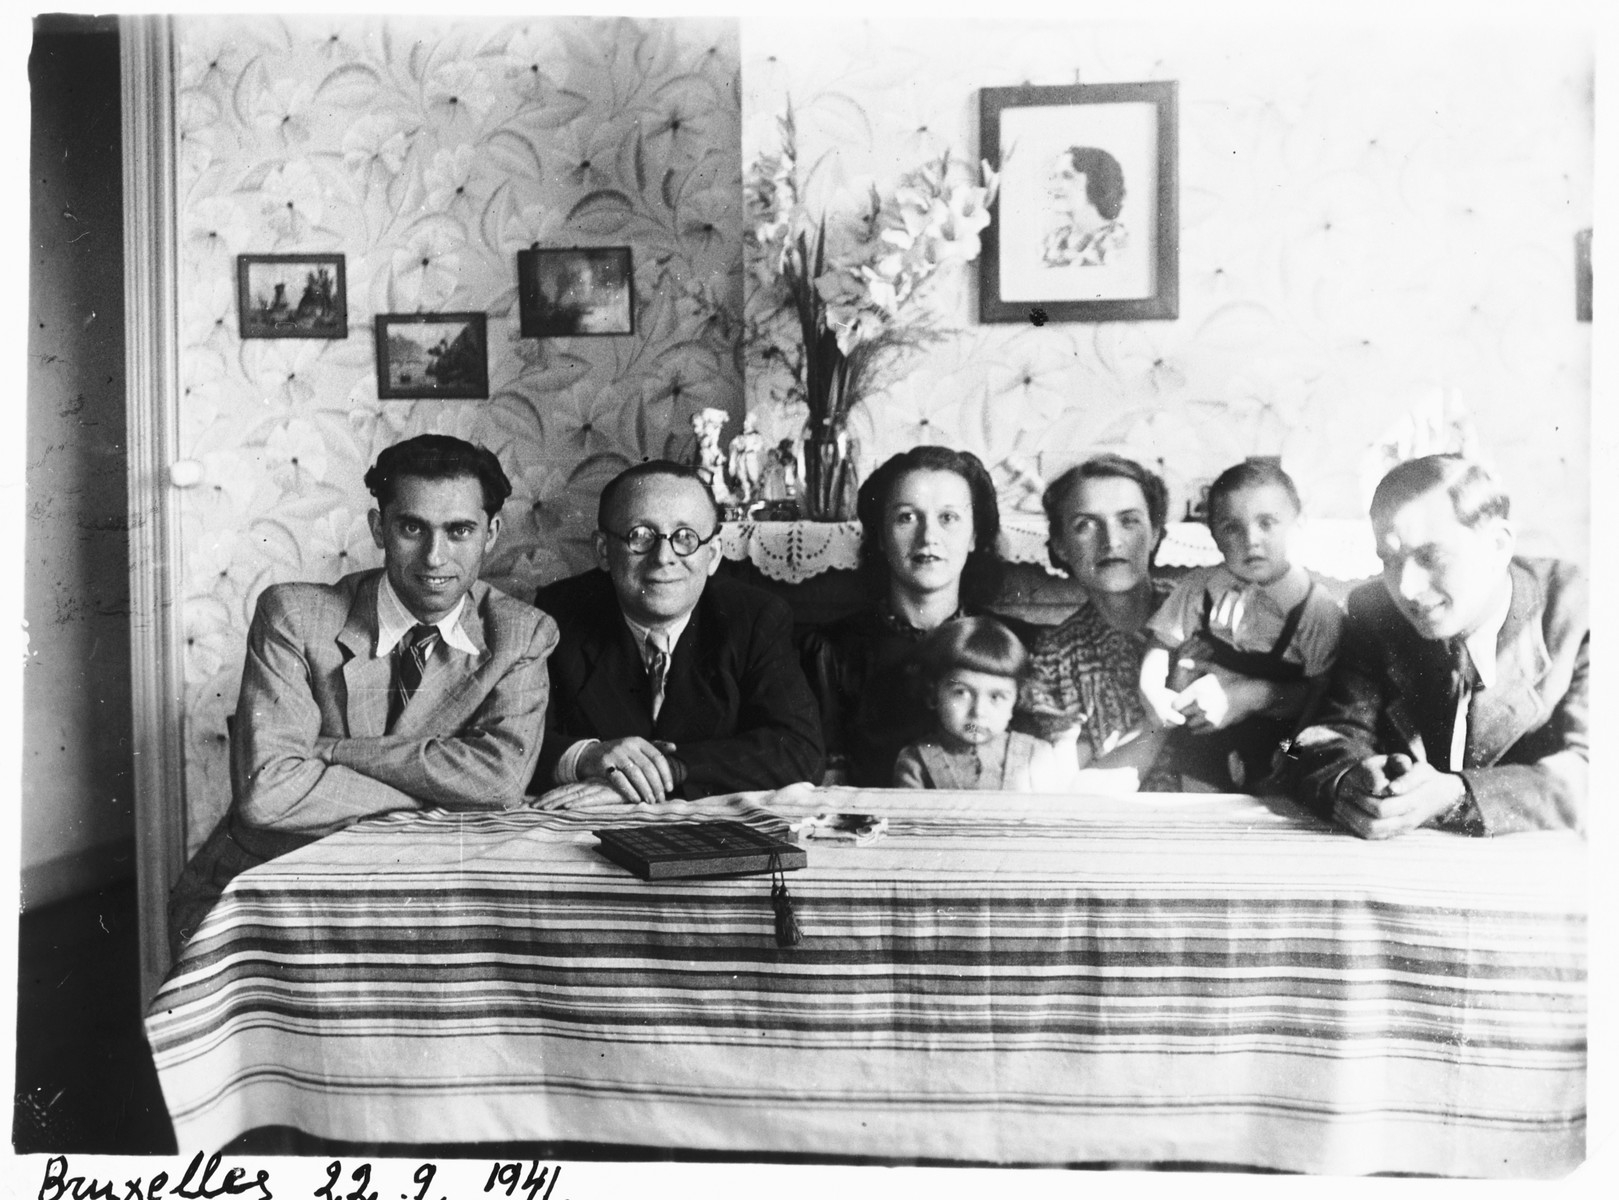 Members of the extended Ciechanow family are gathered in an apartment in Brussels.  Pictured from left to right are: Alex, unknown, Estera, Leah, Nathan and Adolf Ciechanow.  Adolf and Estera Ciechanow are the brother and sister-in-law of Alex Ciechanow.